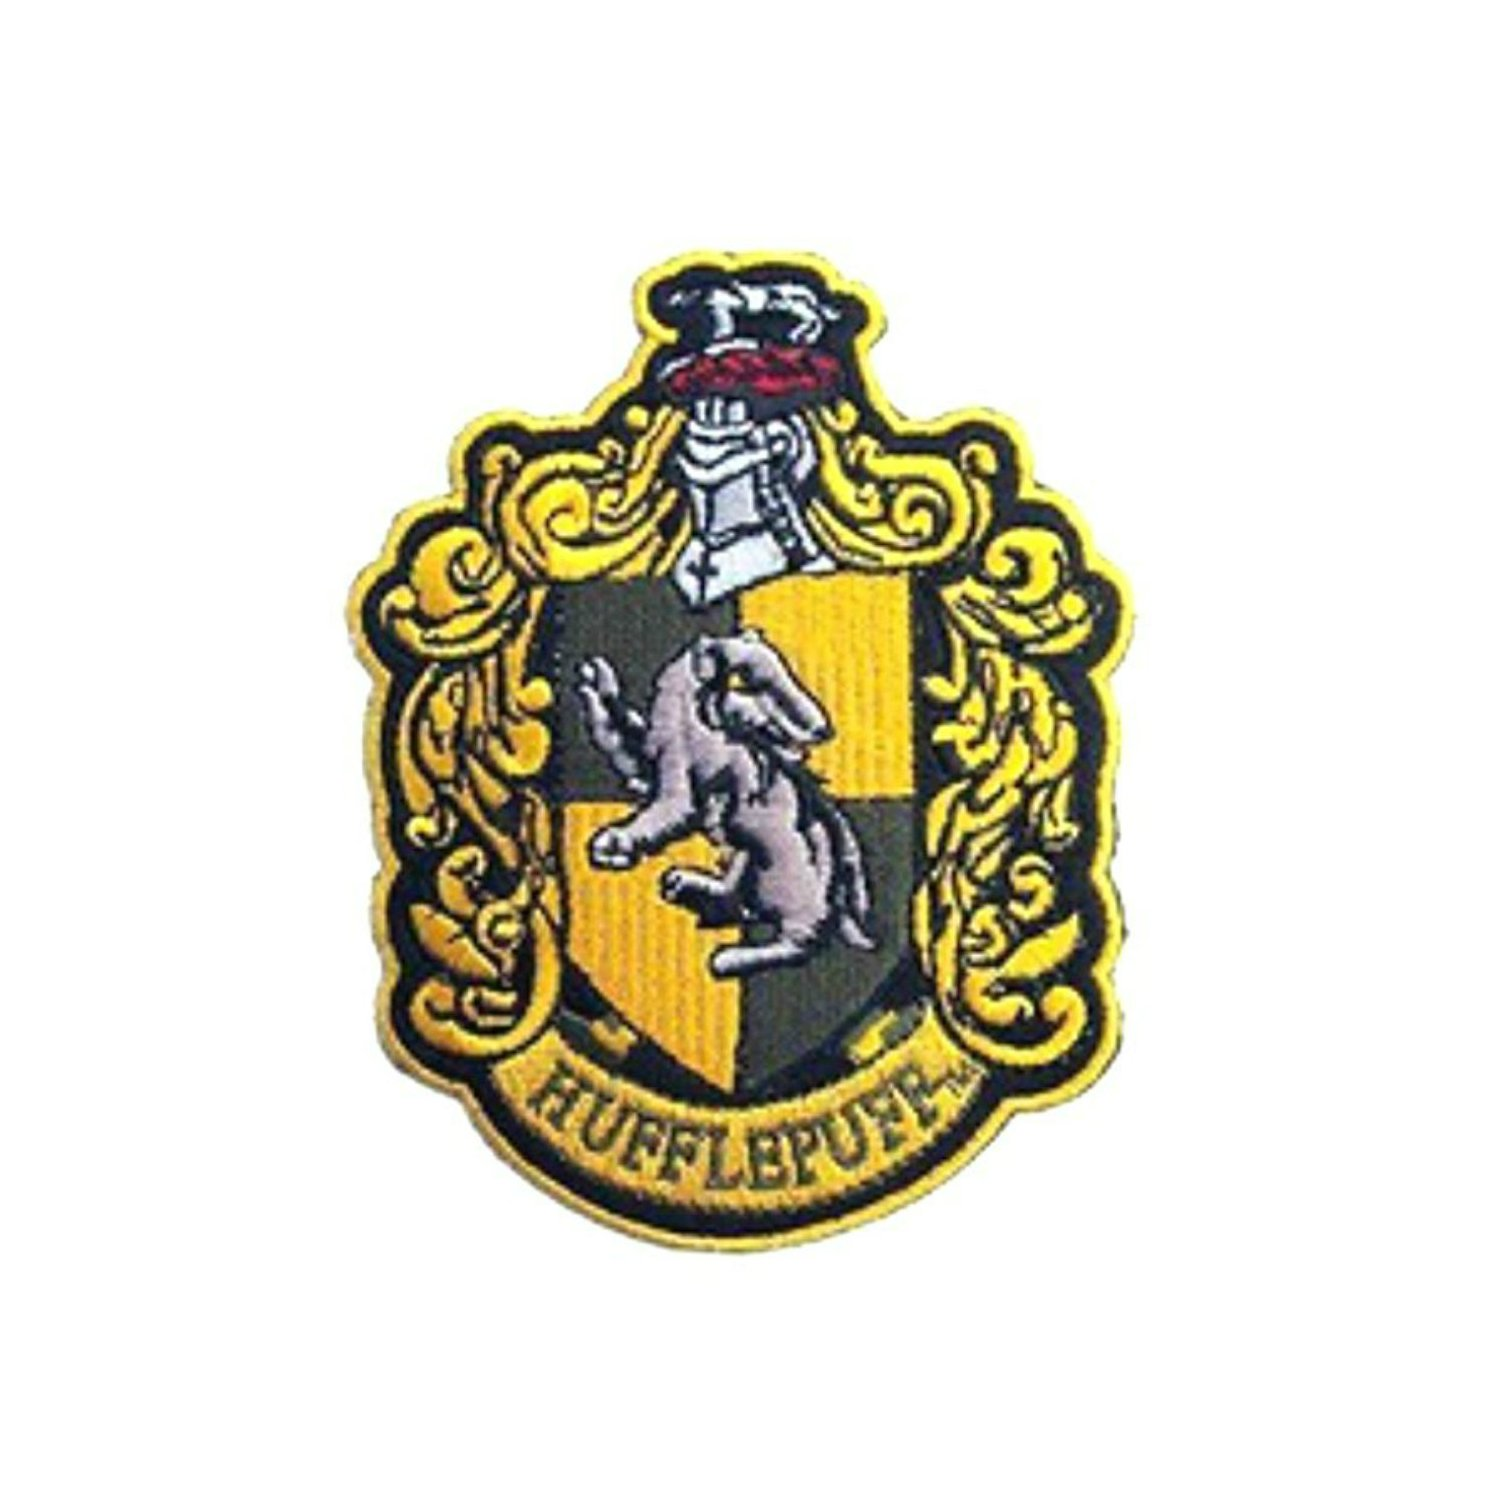 HARRY POTTER GRYFFINDOR Extra Large Embroidered Robe Patch - Full Size, NEW